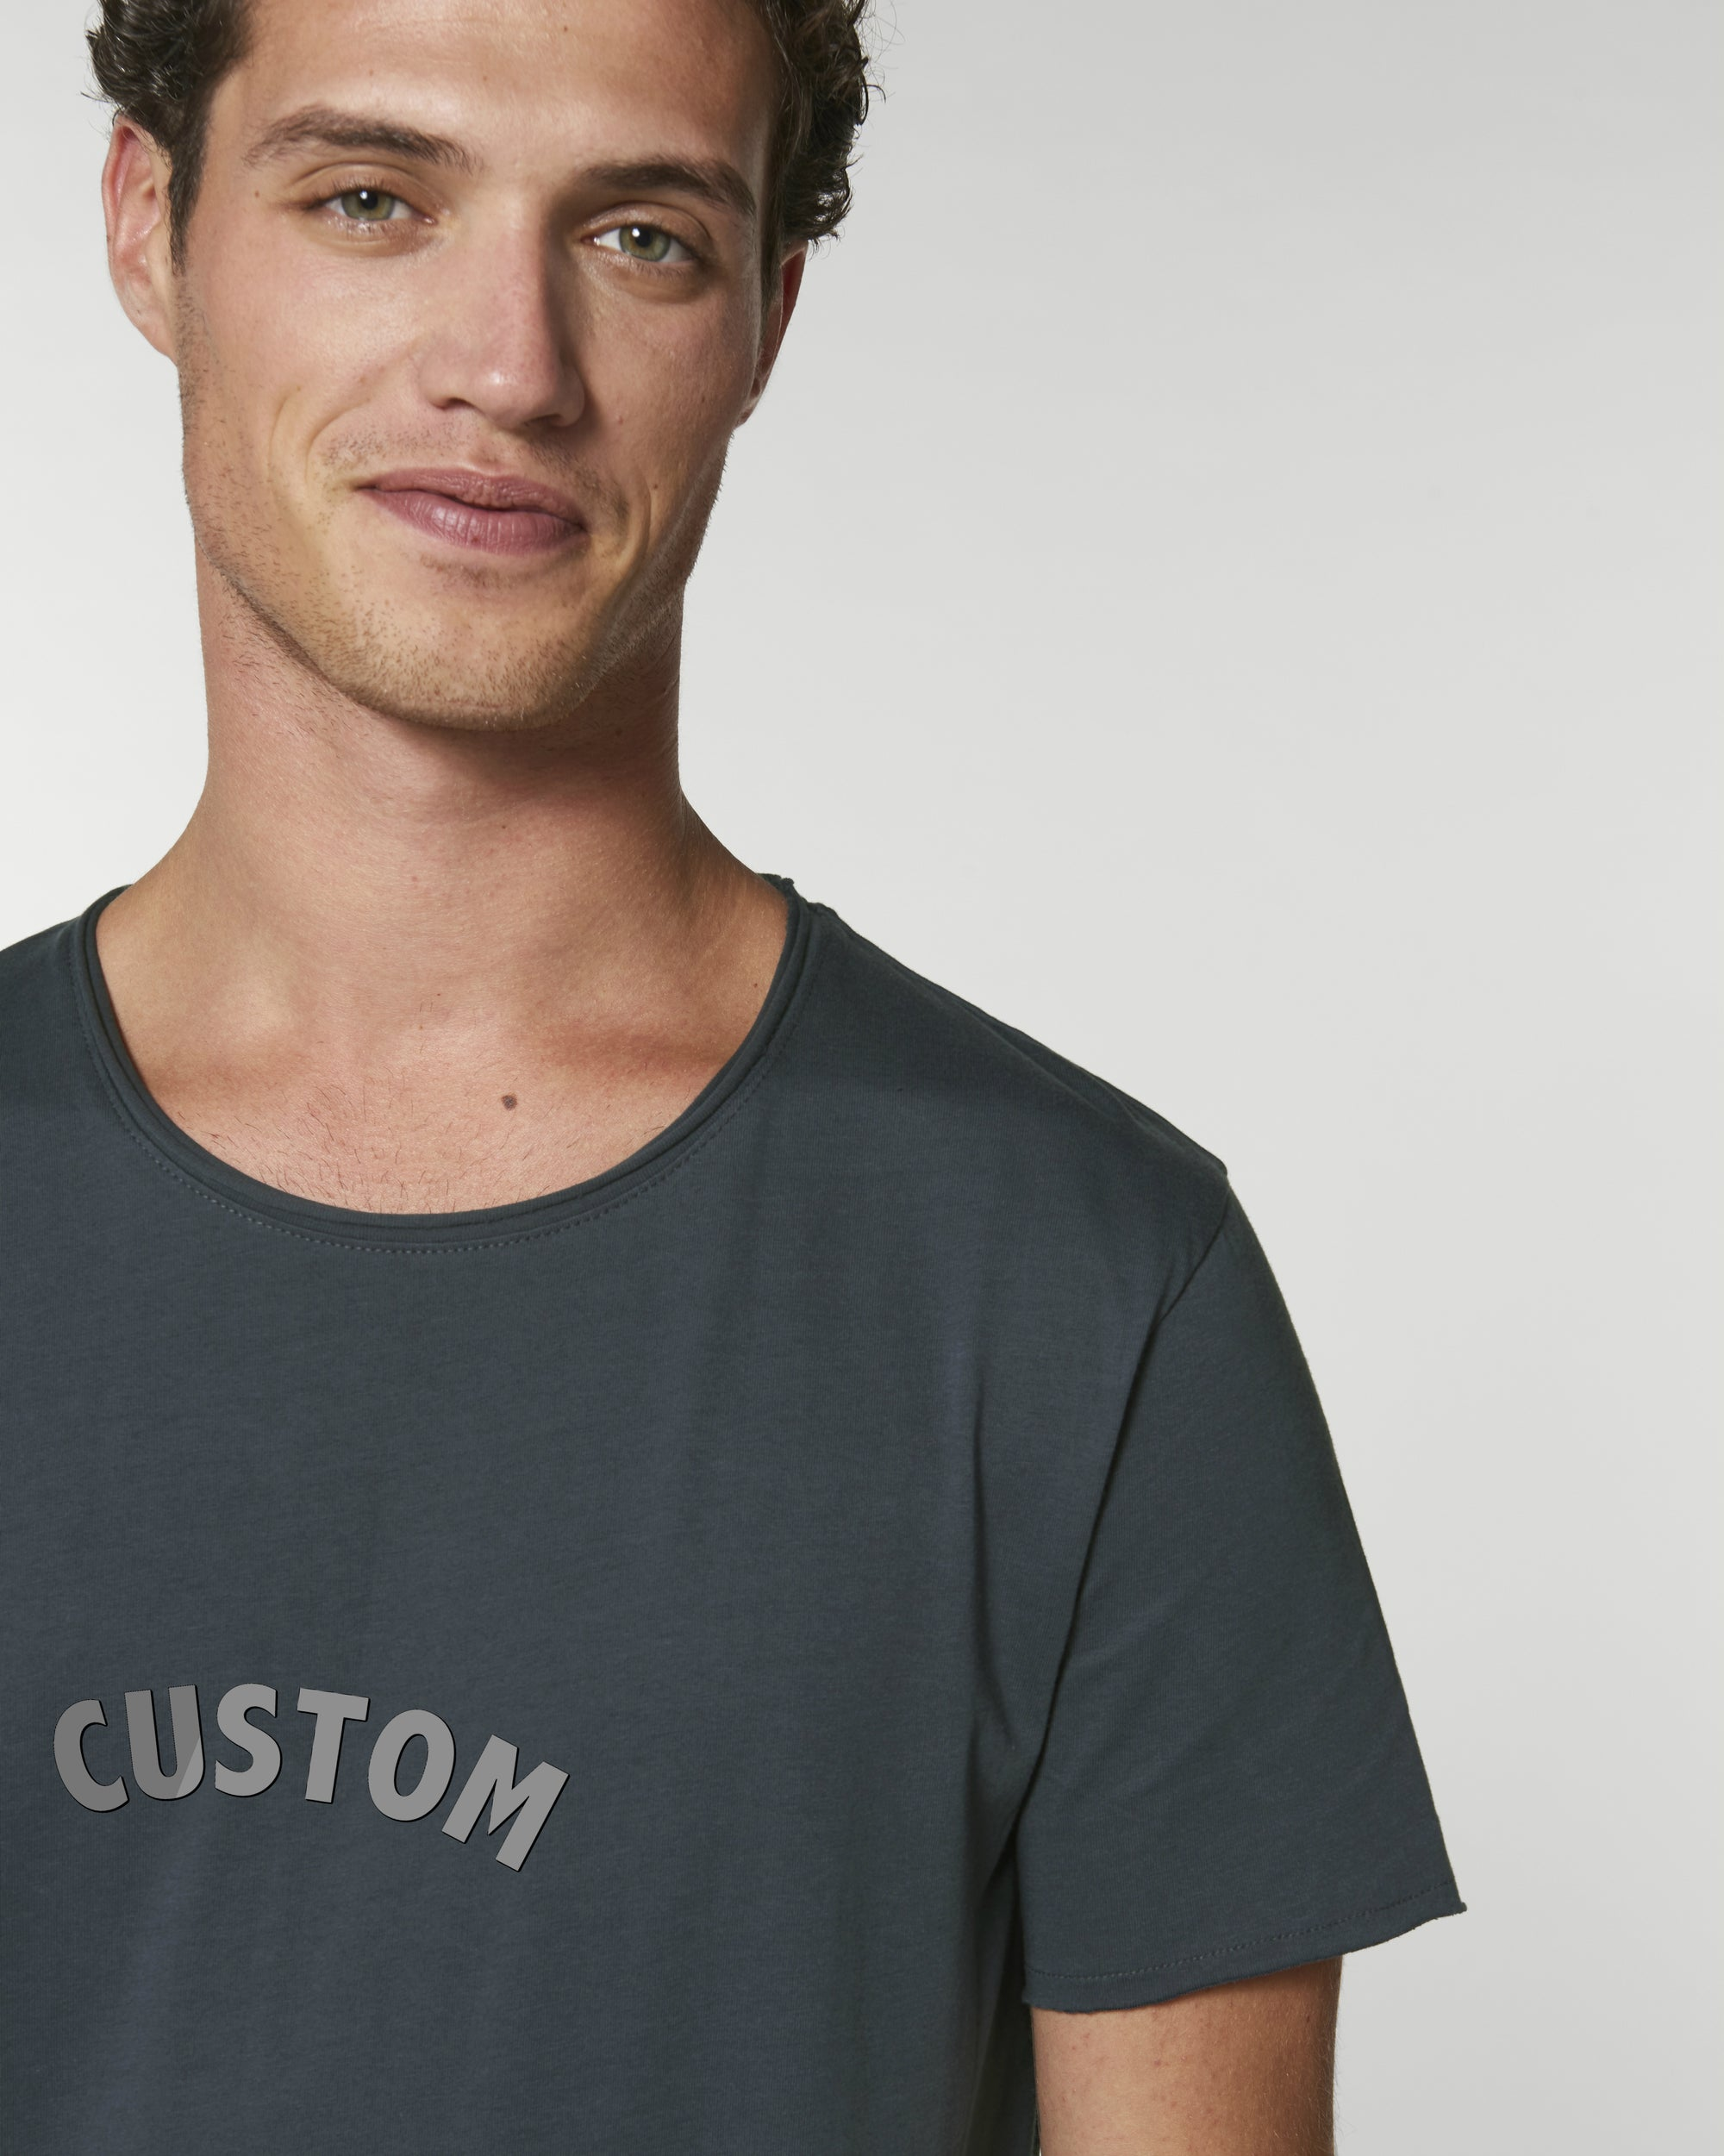 MEN'S RAW EDGE LONG LENGTH T-SHIRT - customisable centre chest embroidery